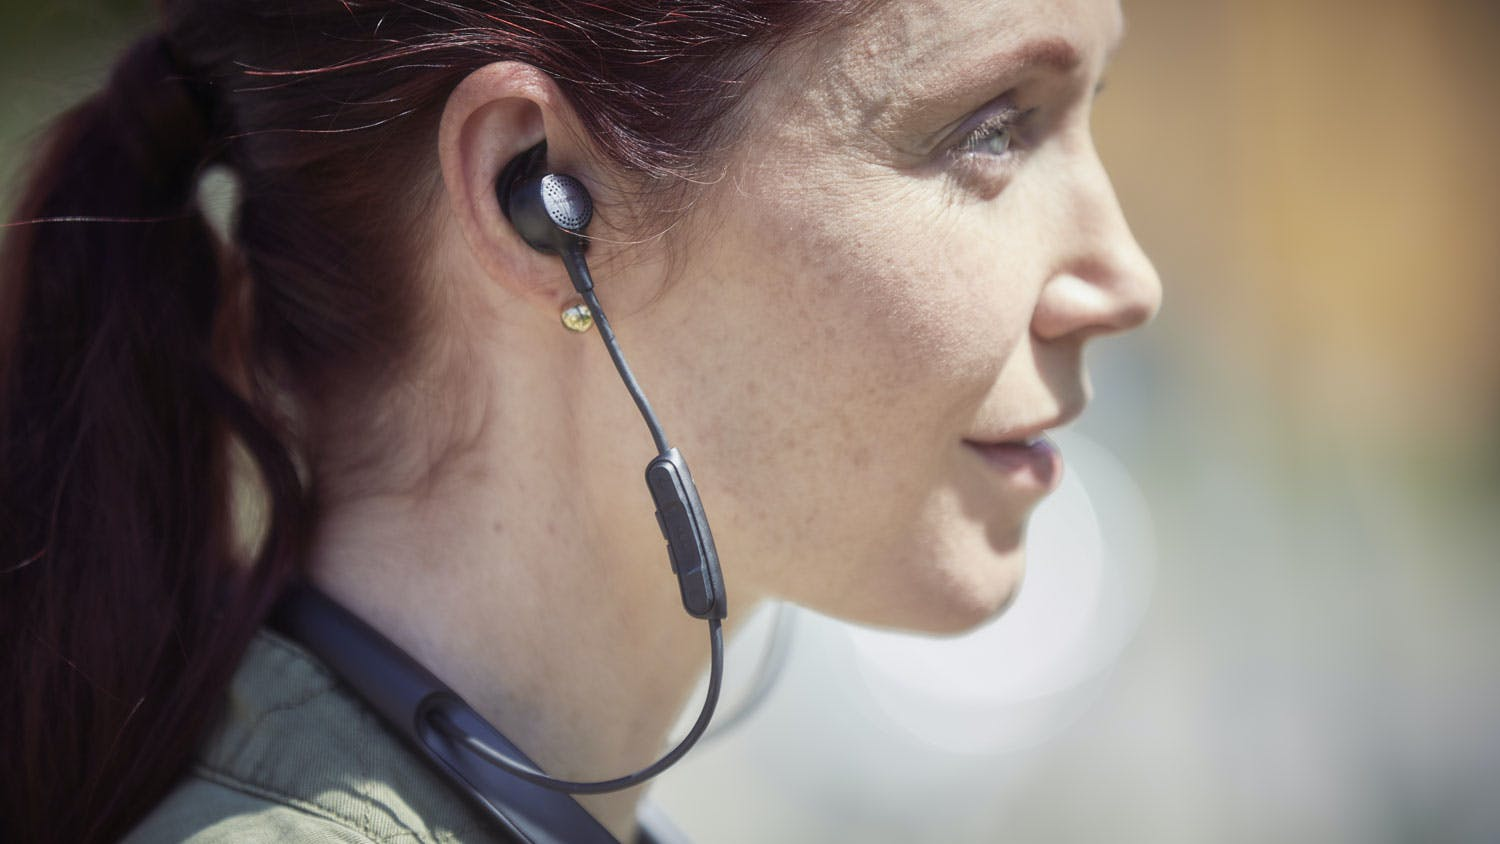 Bose QuietControl 30 Wireless In-Ear Headphones - Lifestyle